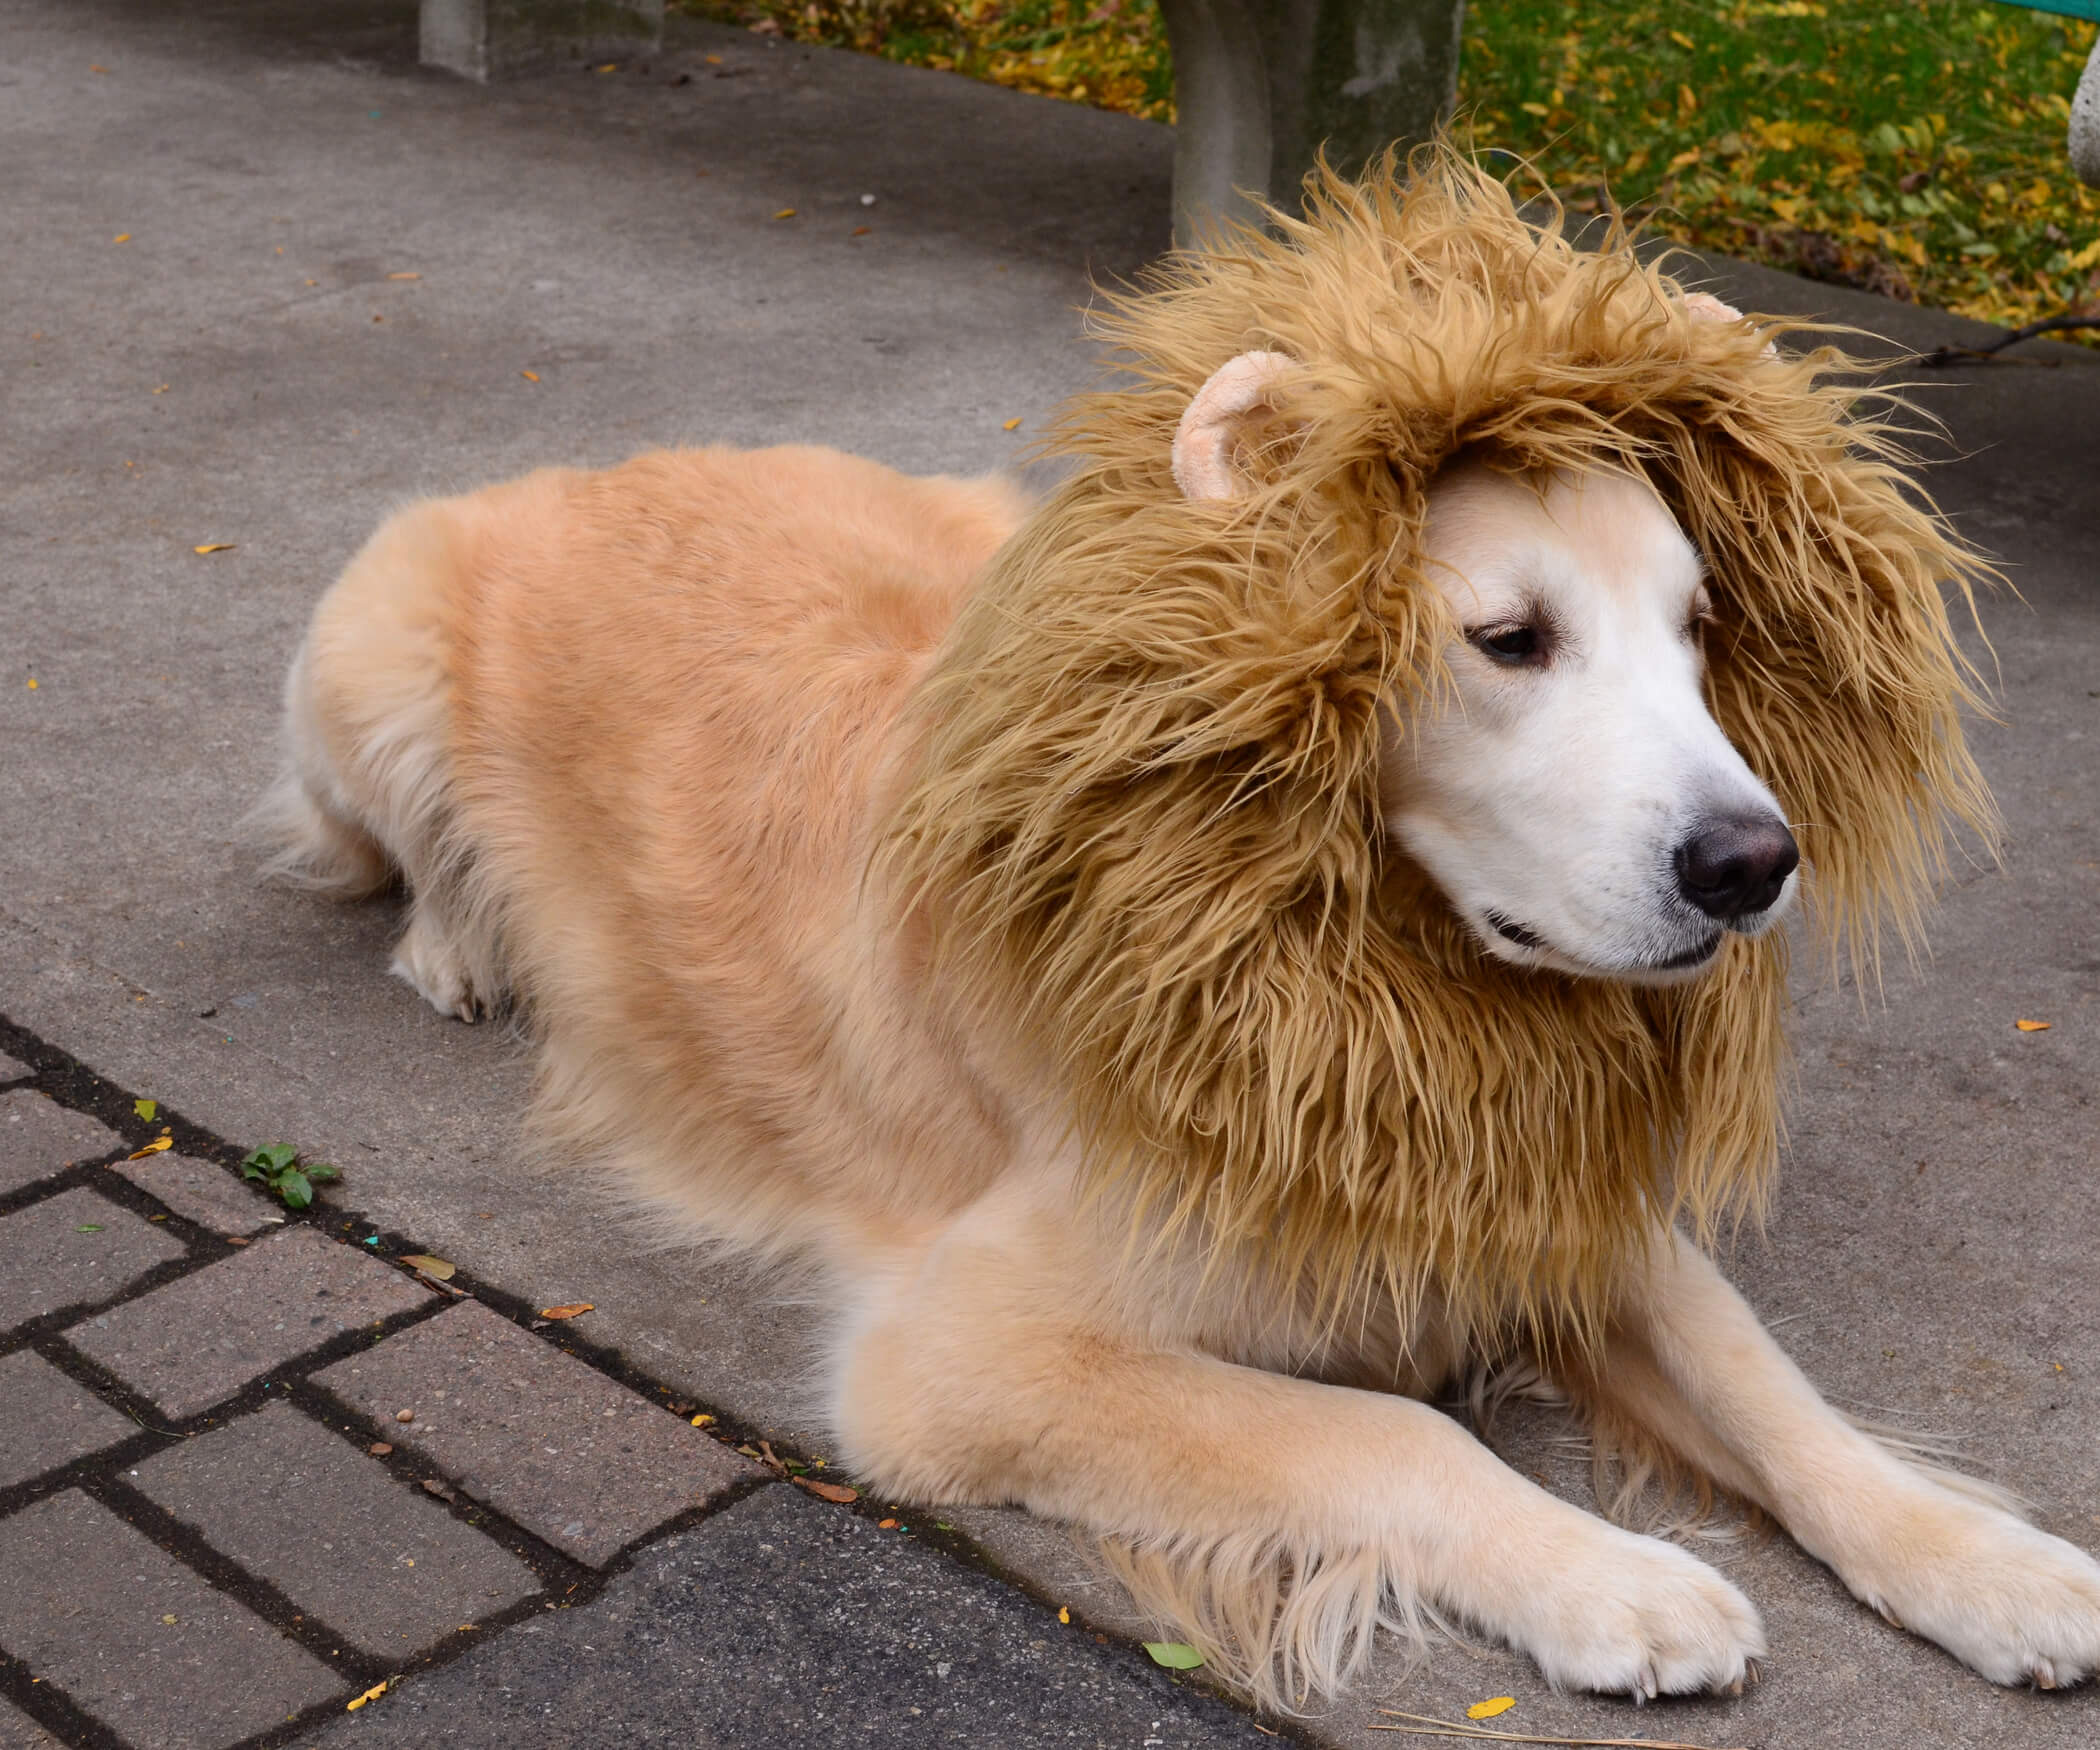 If this dog looks like he doesn't have pride he'd be lion